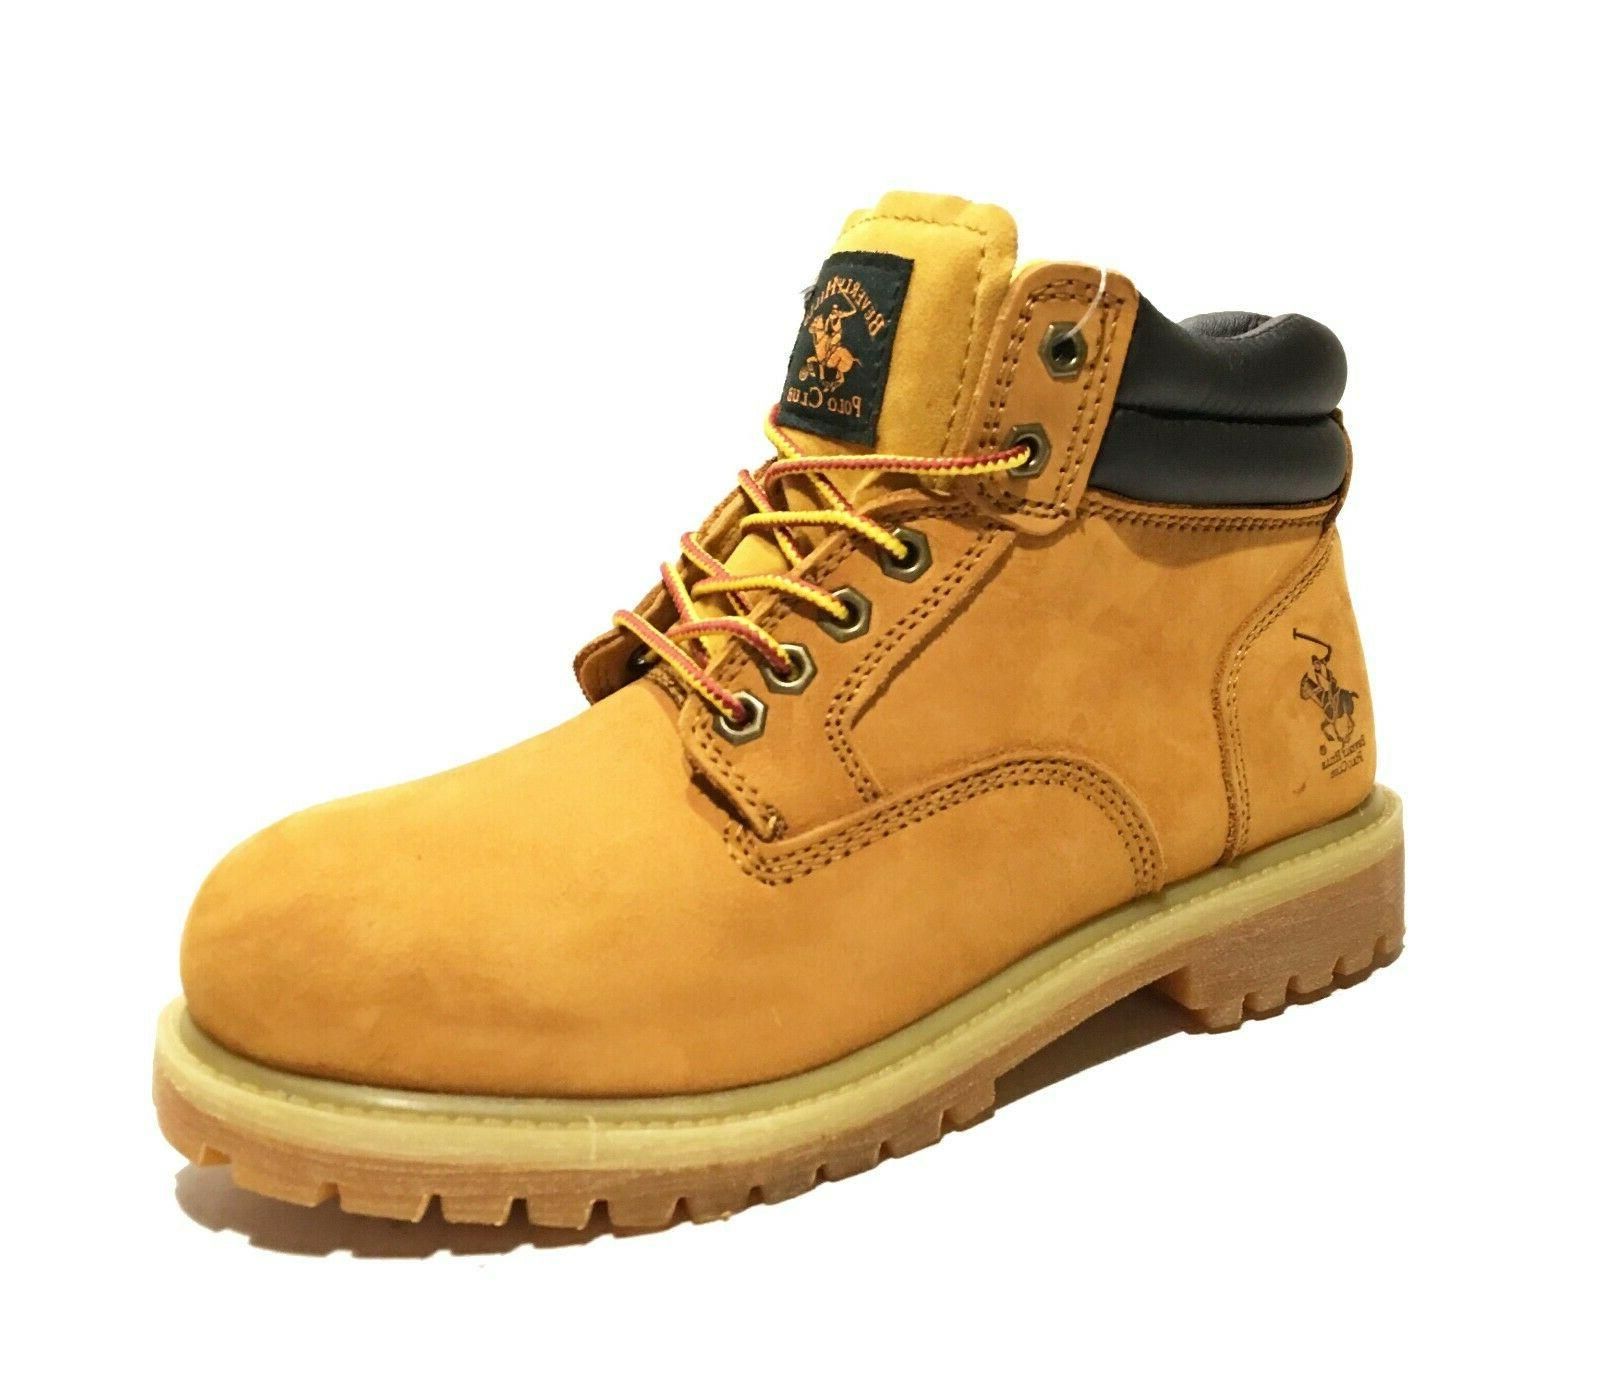 Mens Snow Boots Shoes Leather Waterproof 2016